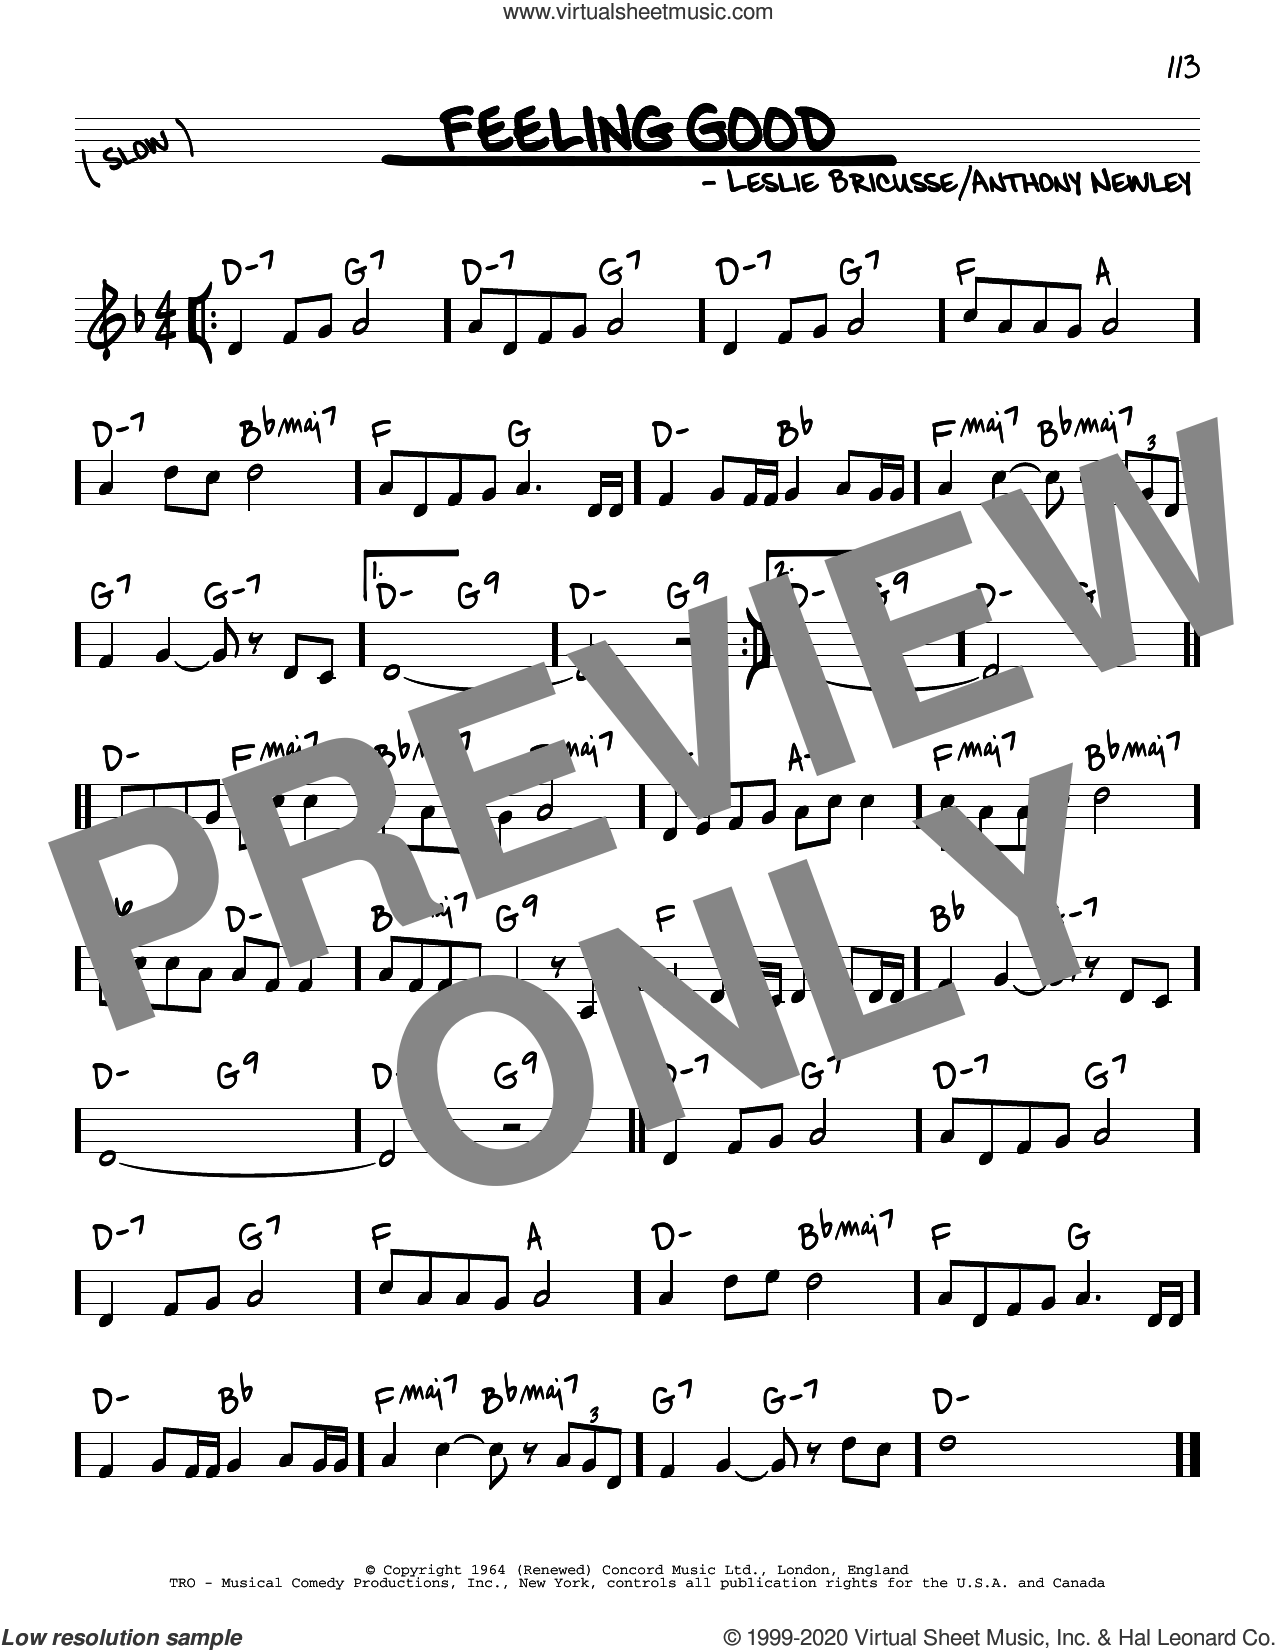 Feeling Good sheet music for voice and other instruments (real book) by Leslie Bricusse, Michael Buble, Anthony Newley and Leslie Bricusse and Anthony Newley, intermediate skill level